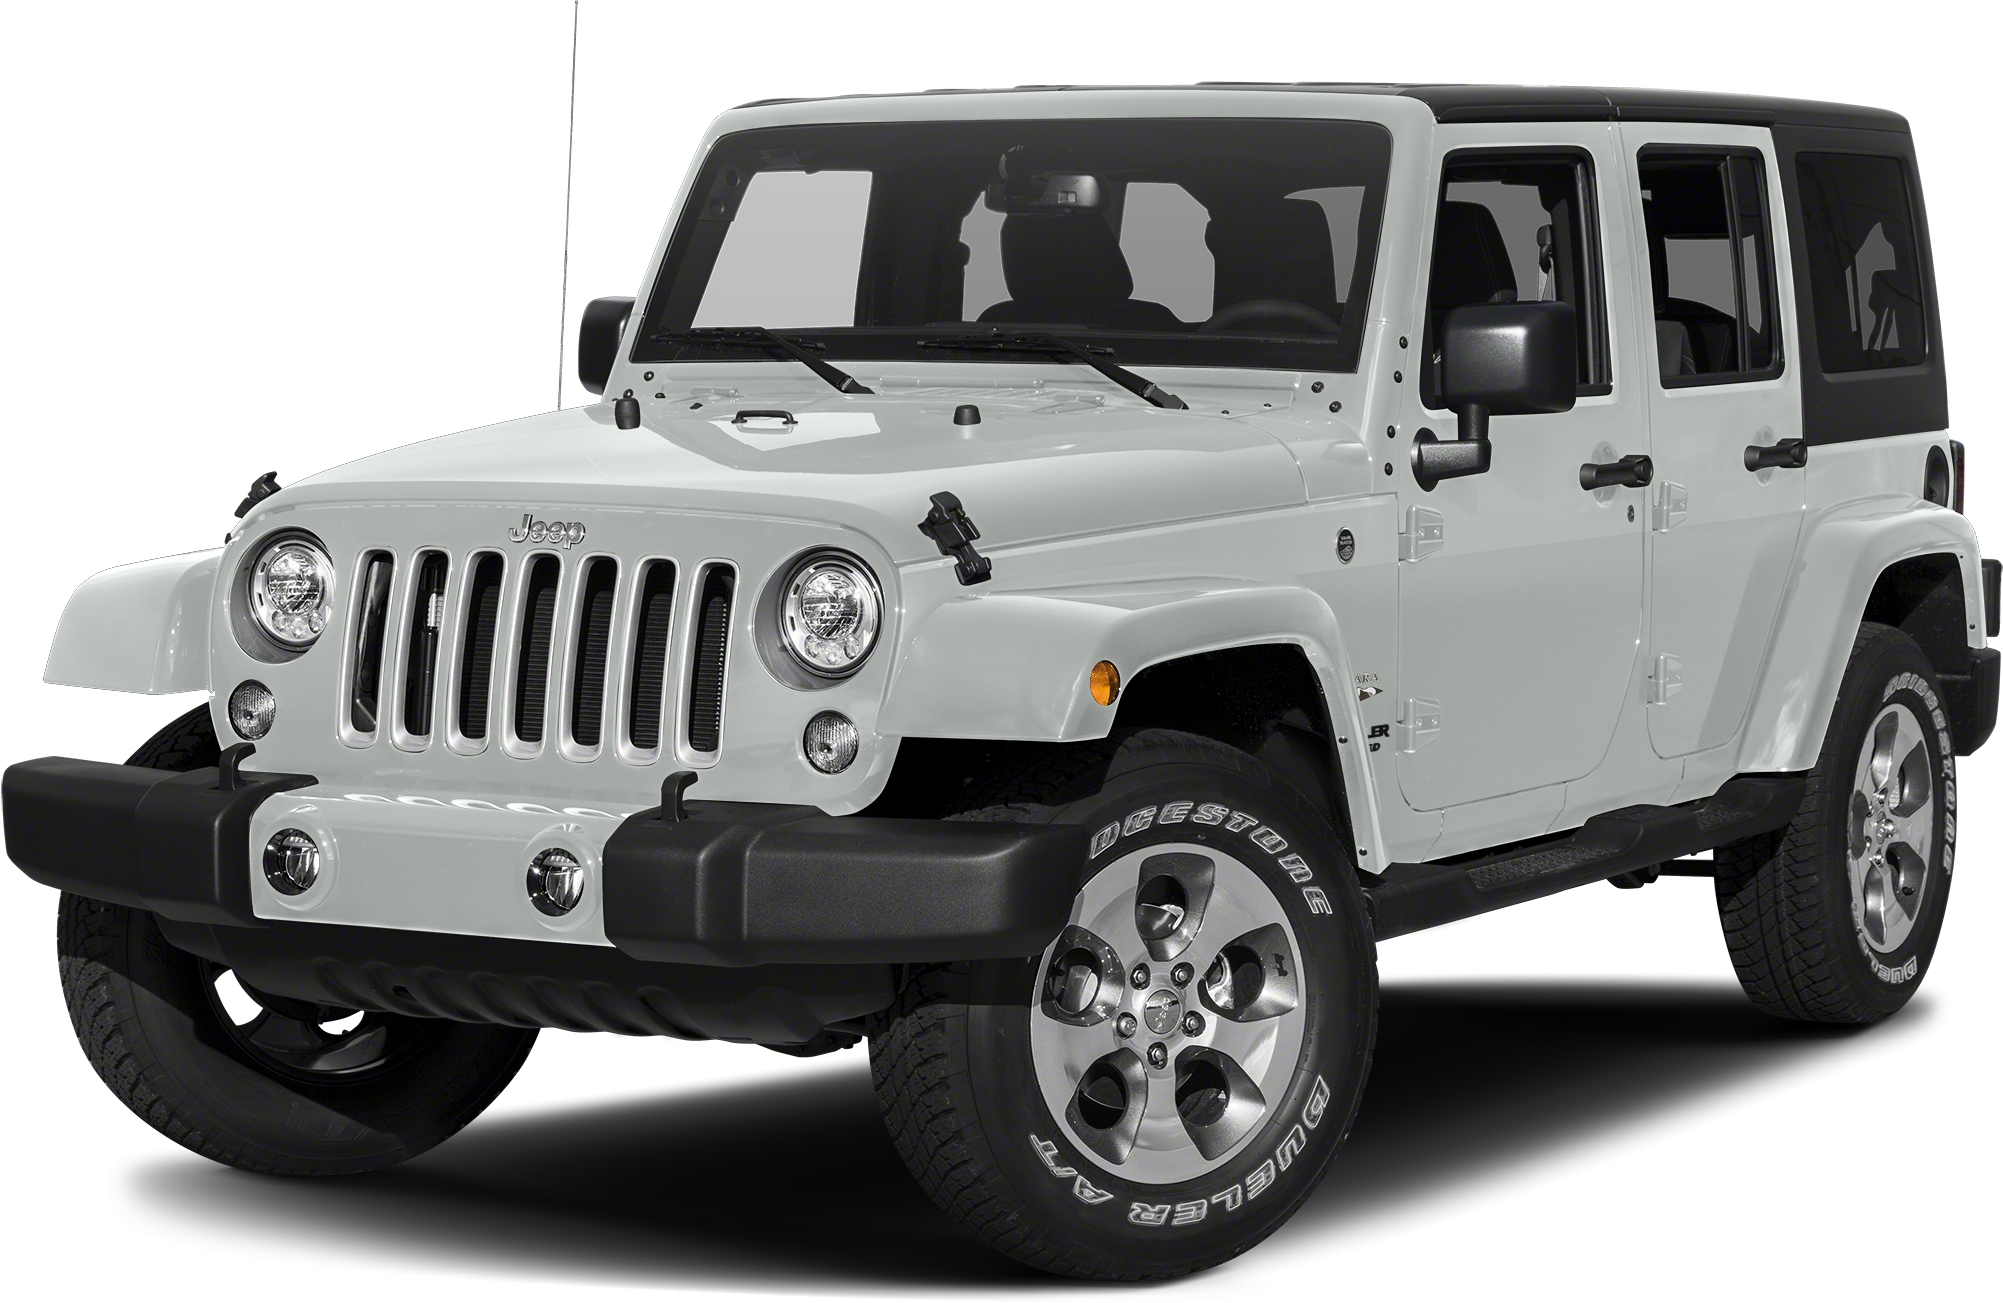 2018 jeep wrangler jk unlimited sahara 4x4 oak park. Black Bedroom Furniture Sets. Home Design Ideas